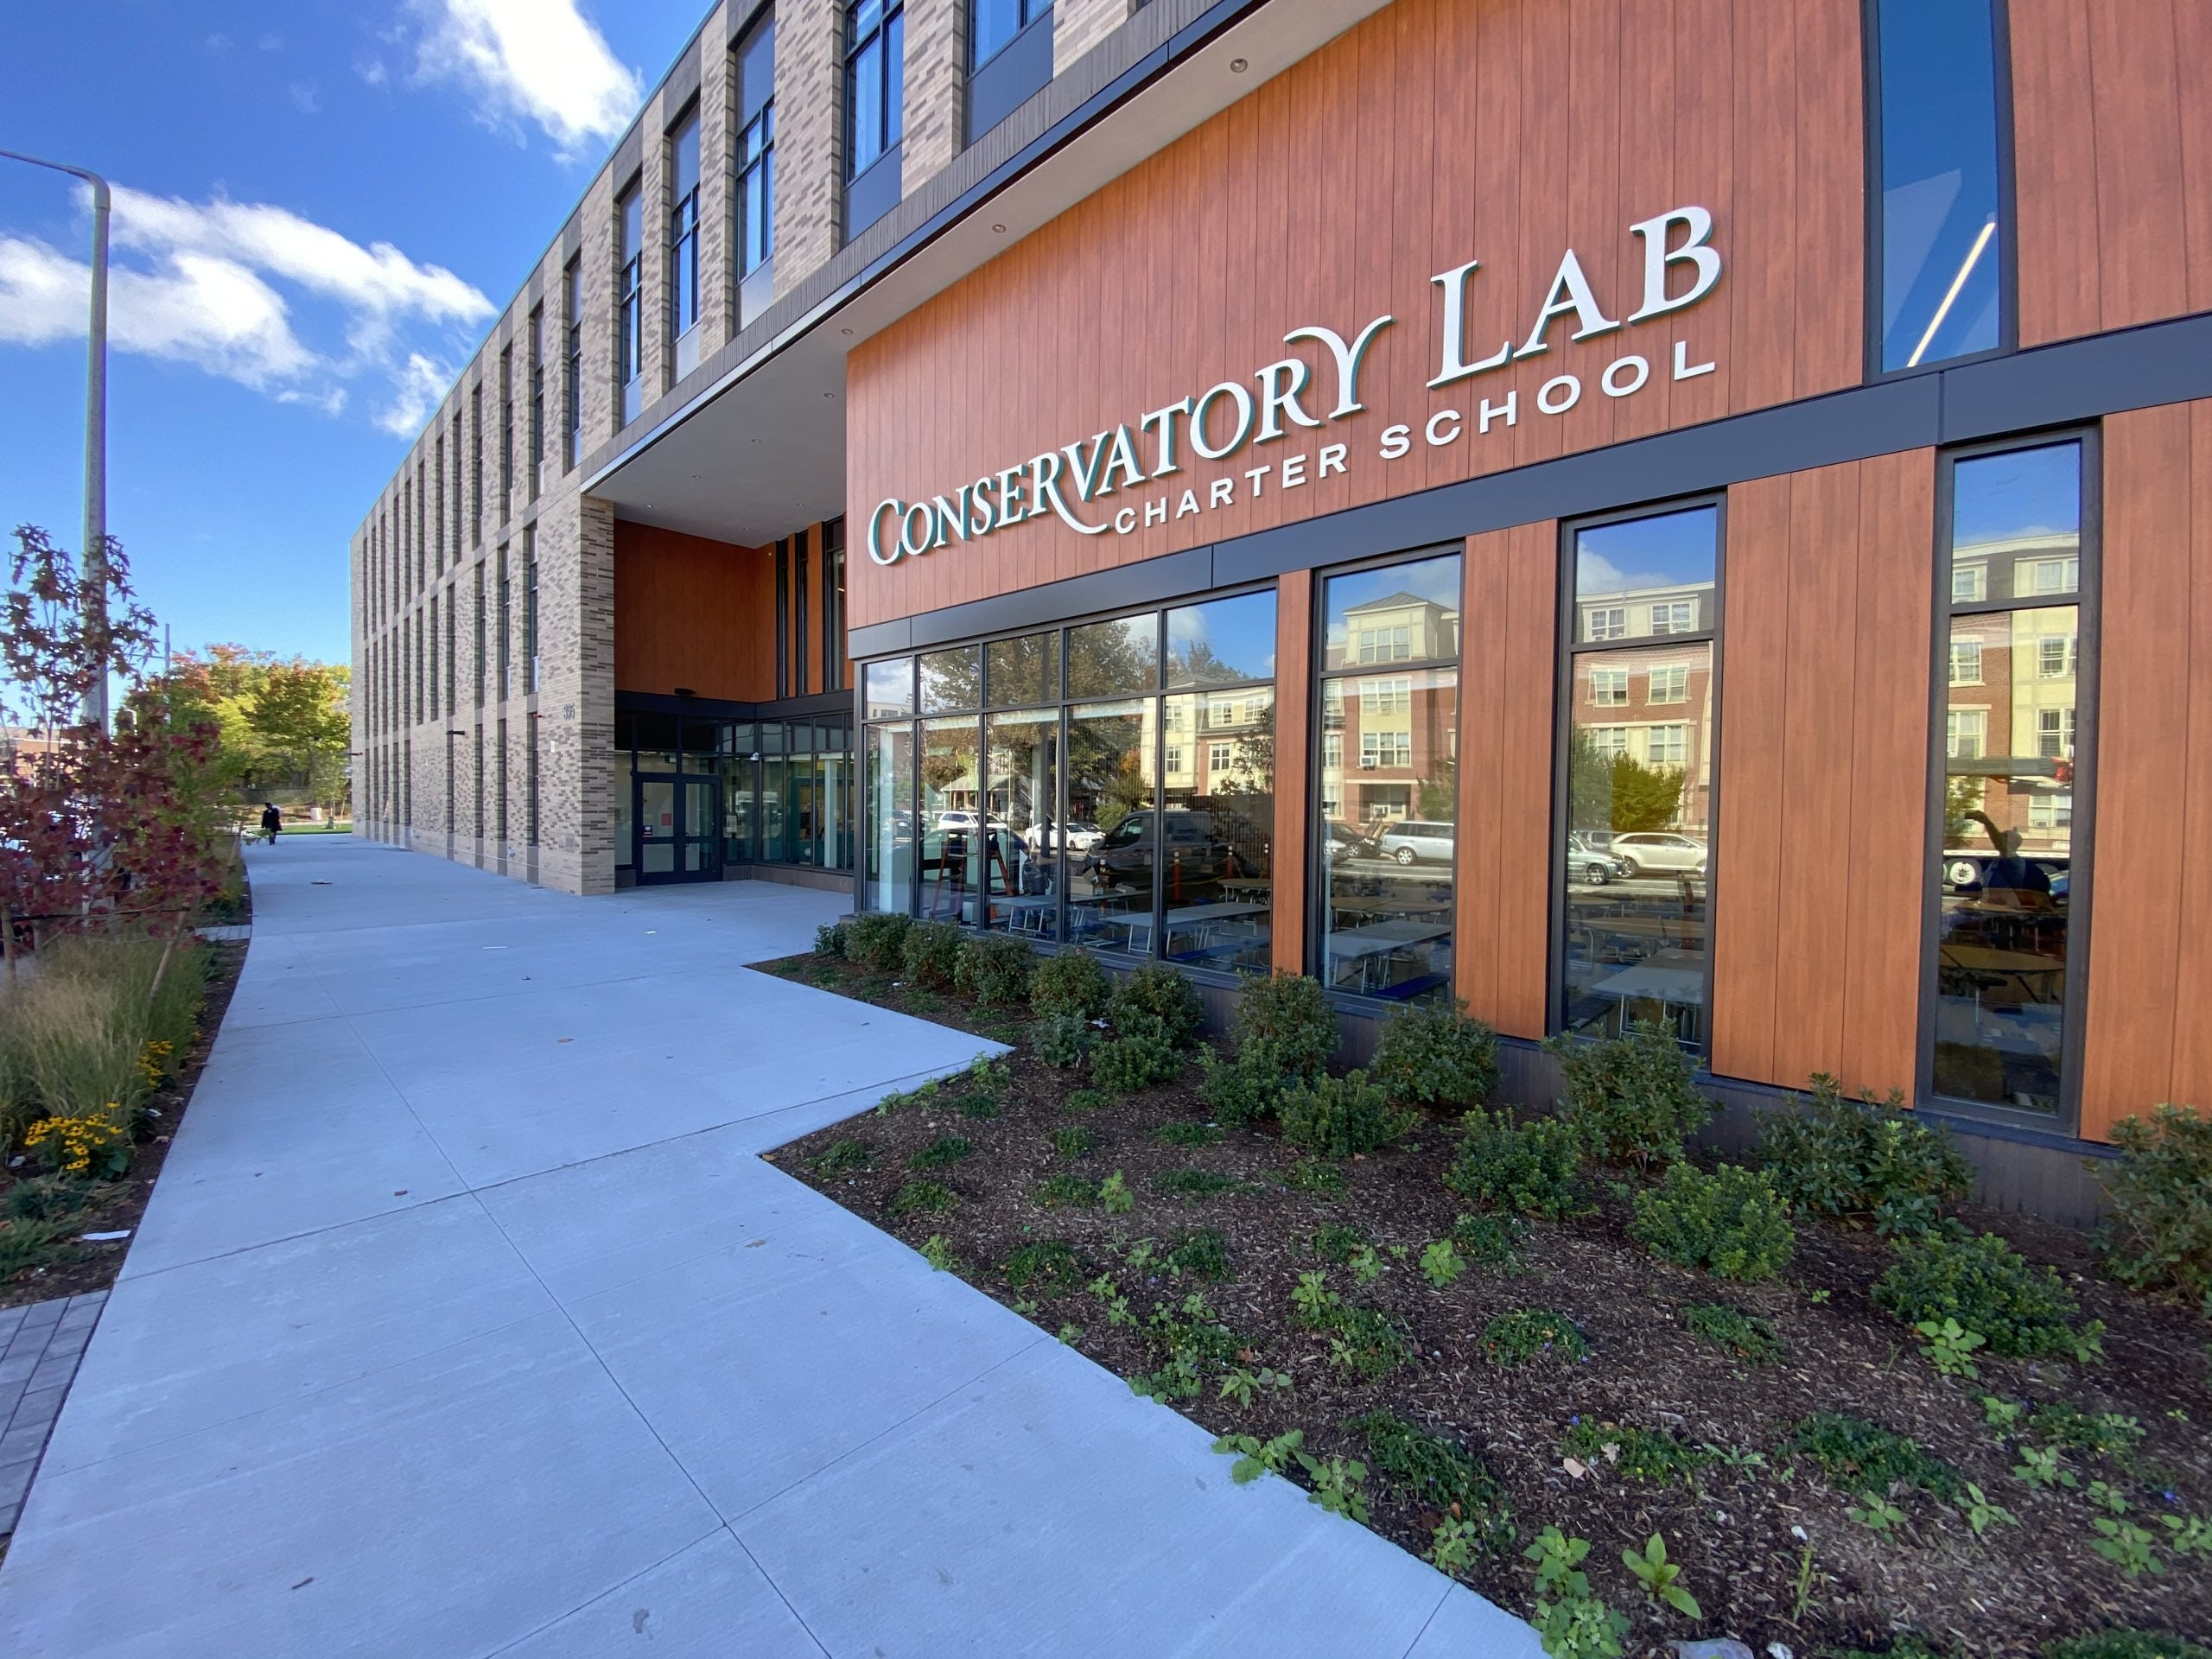 Conservatory Lab Charter School – New Academic Building